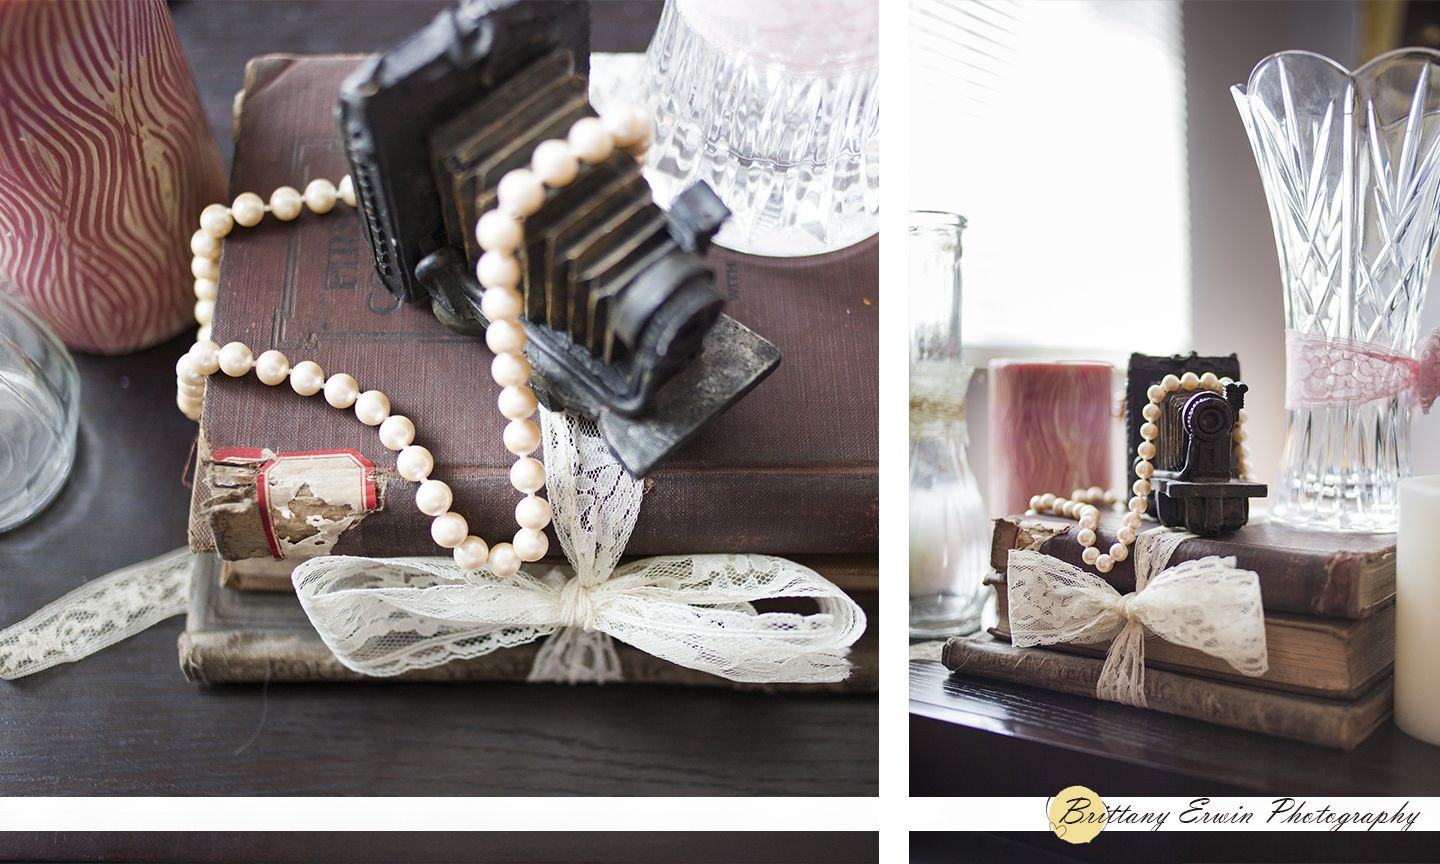 Vintage Wedding Centerpiece With Camera Lace Books Pearls Candles And Vases